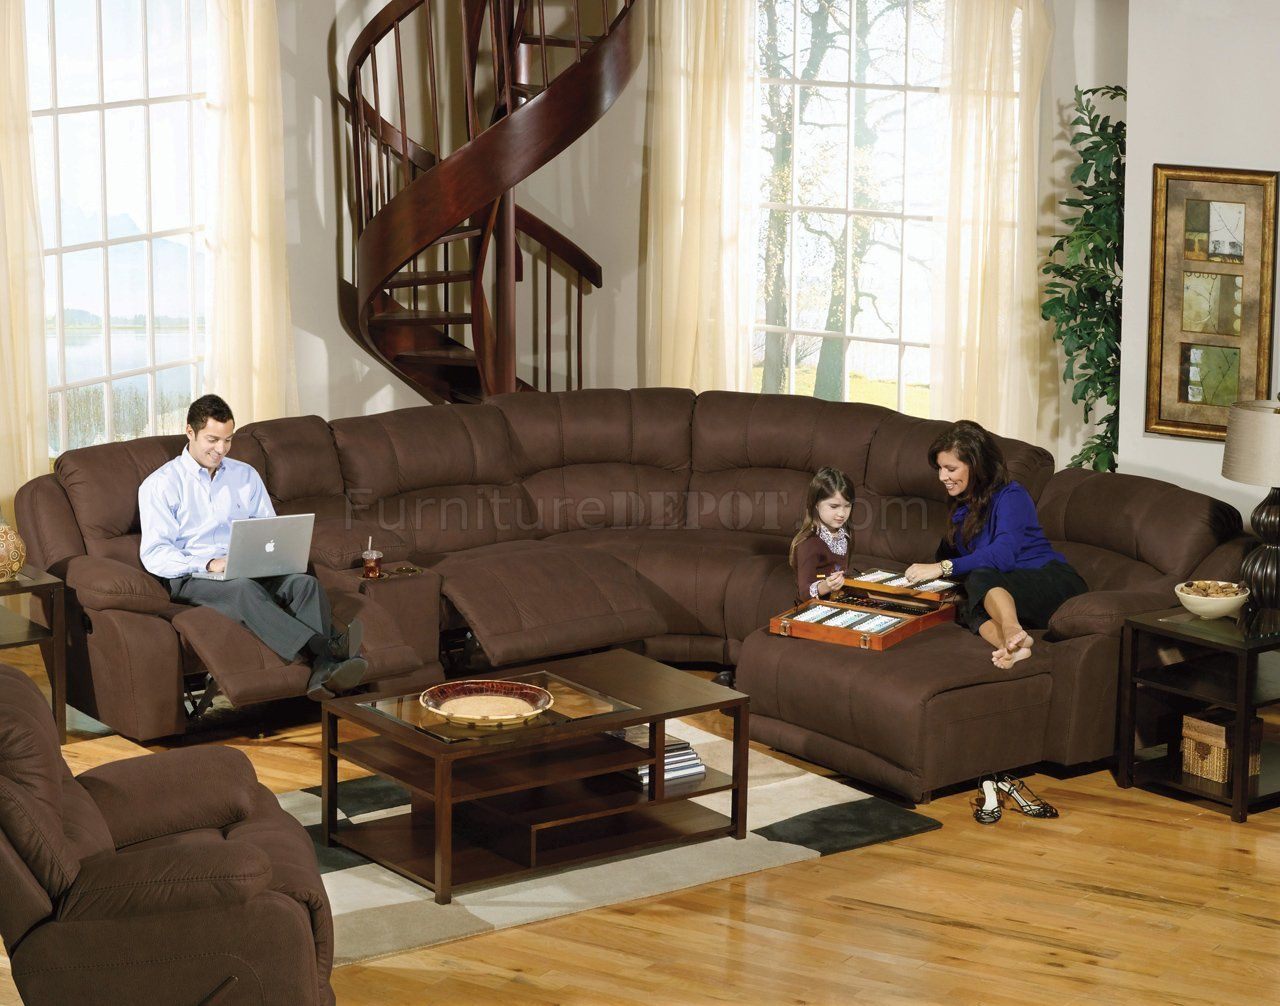 Xl Living Room Furniture | Large Sectional Sofa, Sectional Sofa With Recliner, Sectional Sofa With Chaise